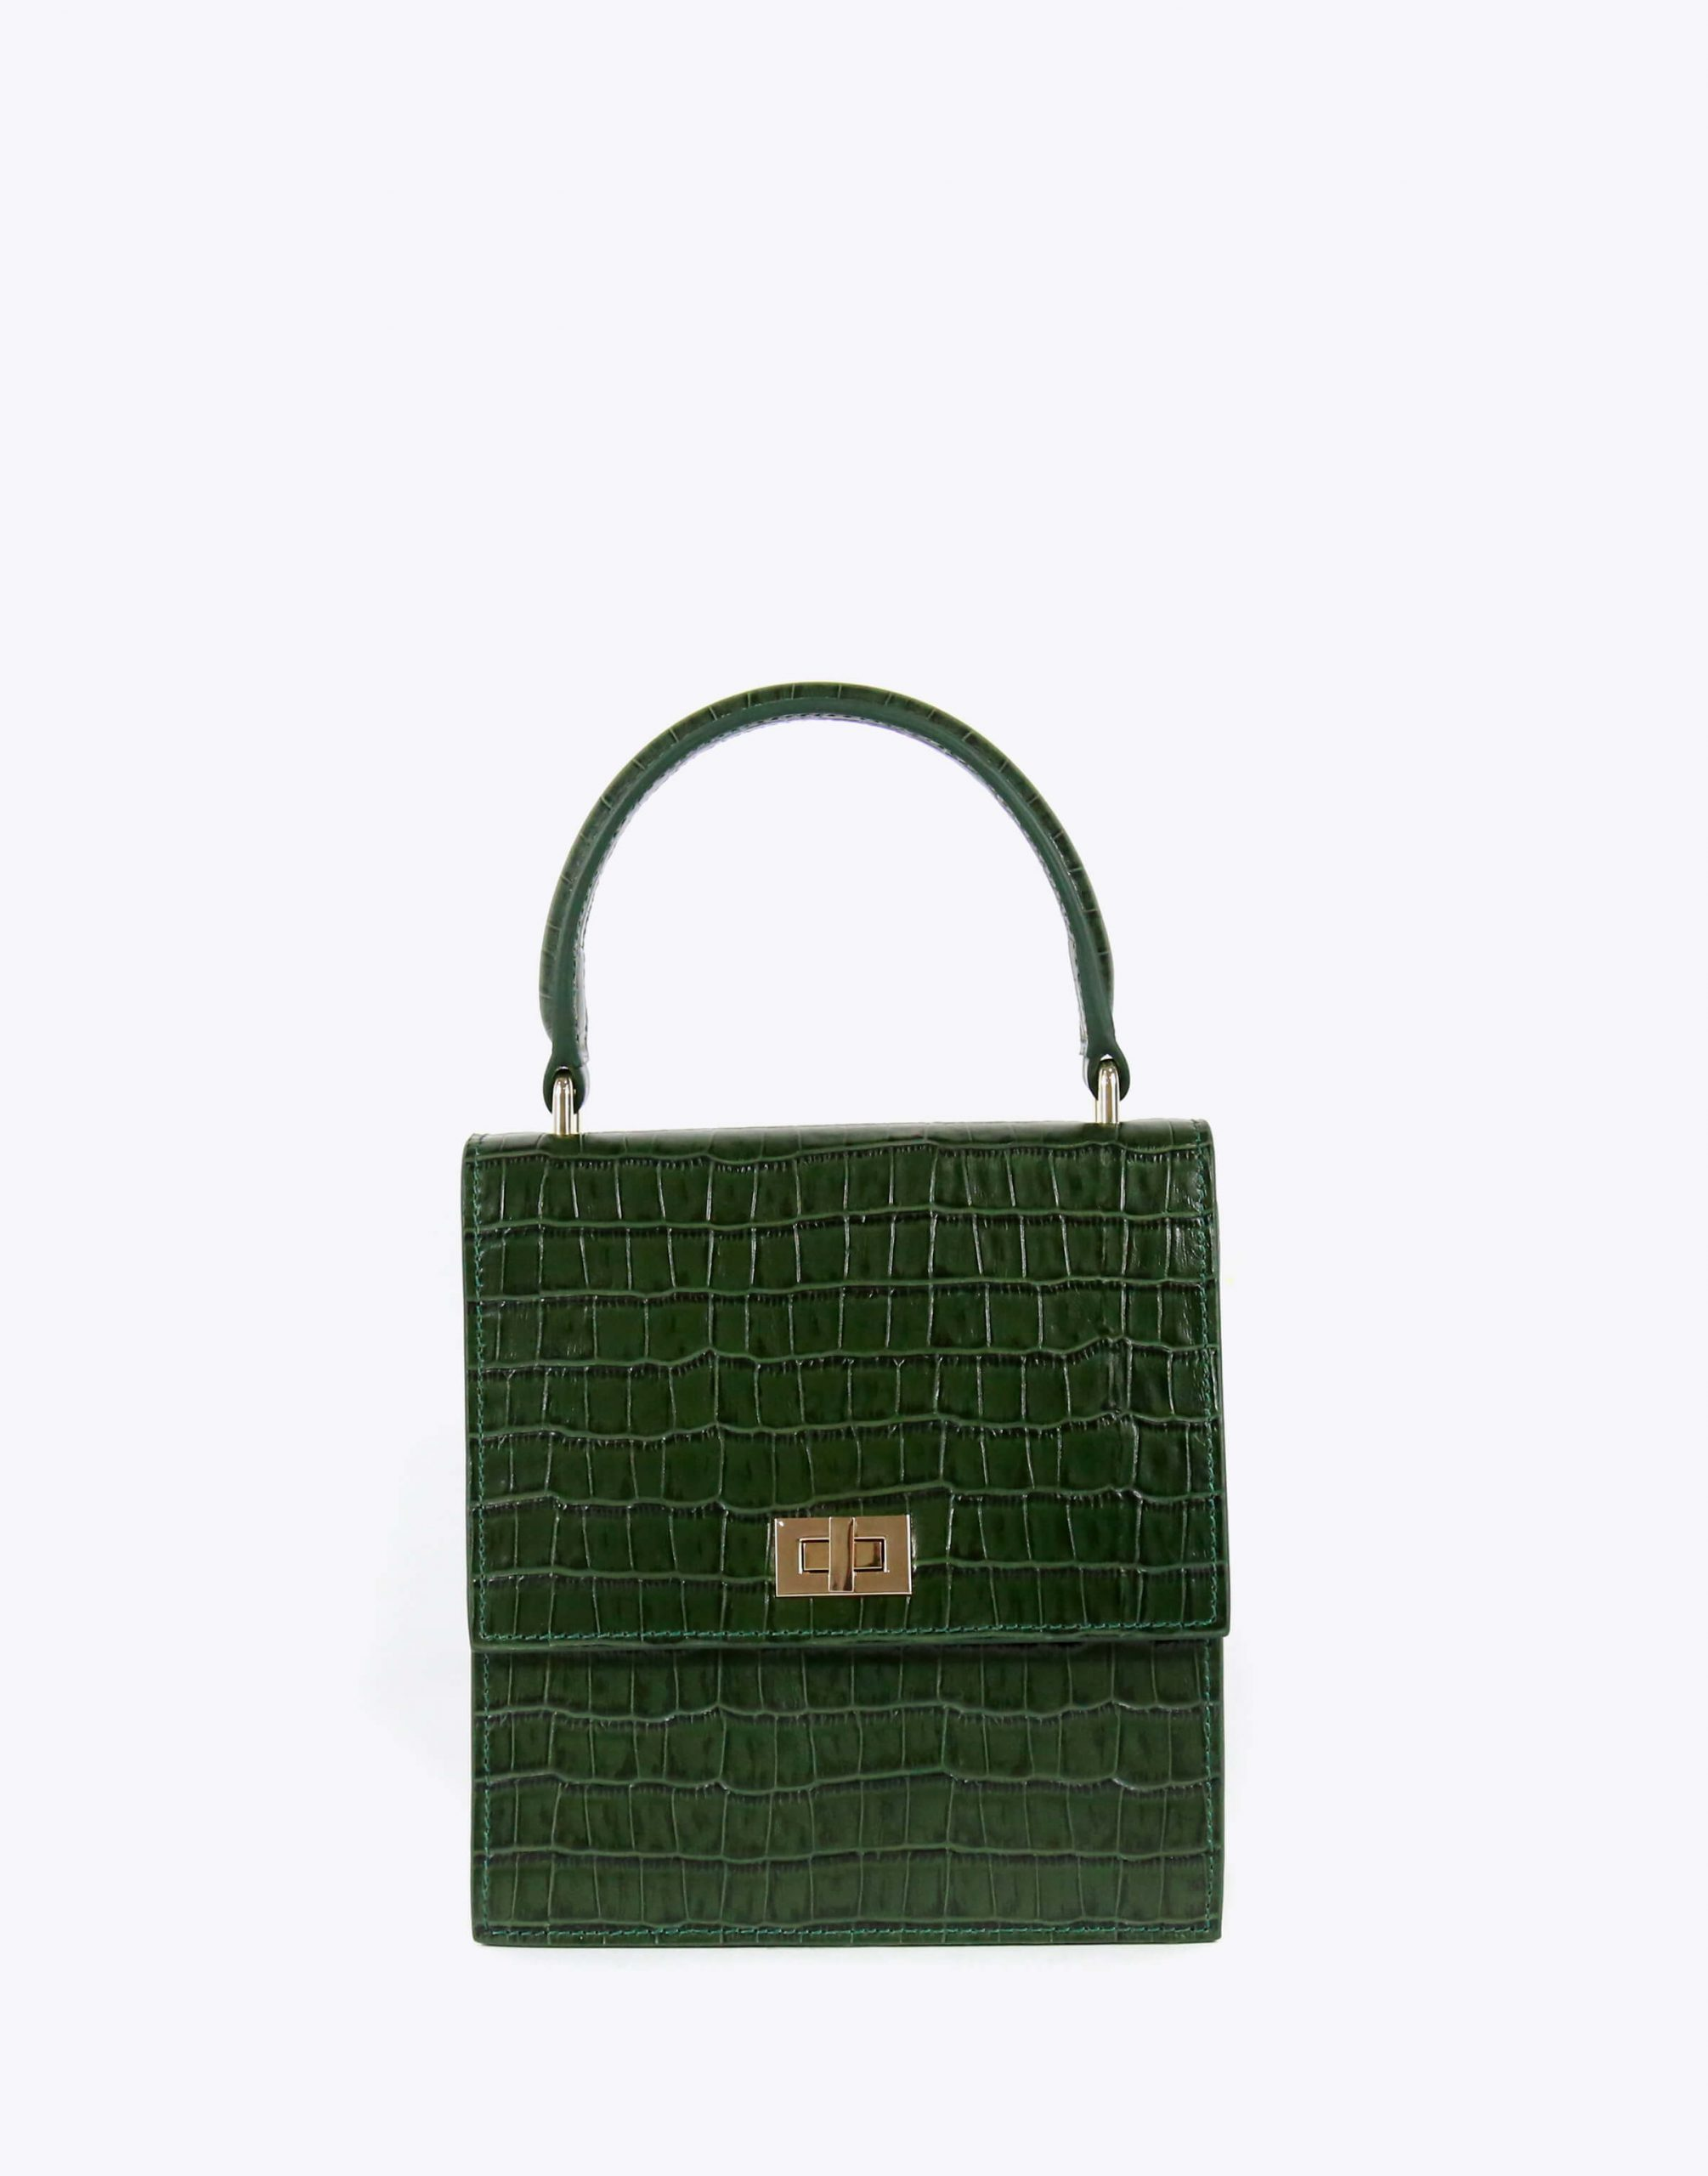 Neely & Chloe No. 19 Mini Lady Bag Croc Front View Green